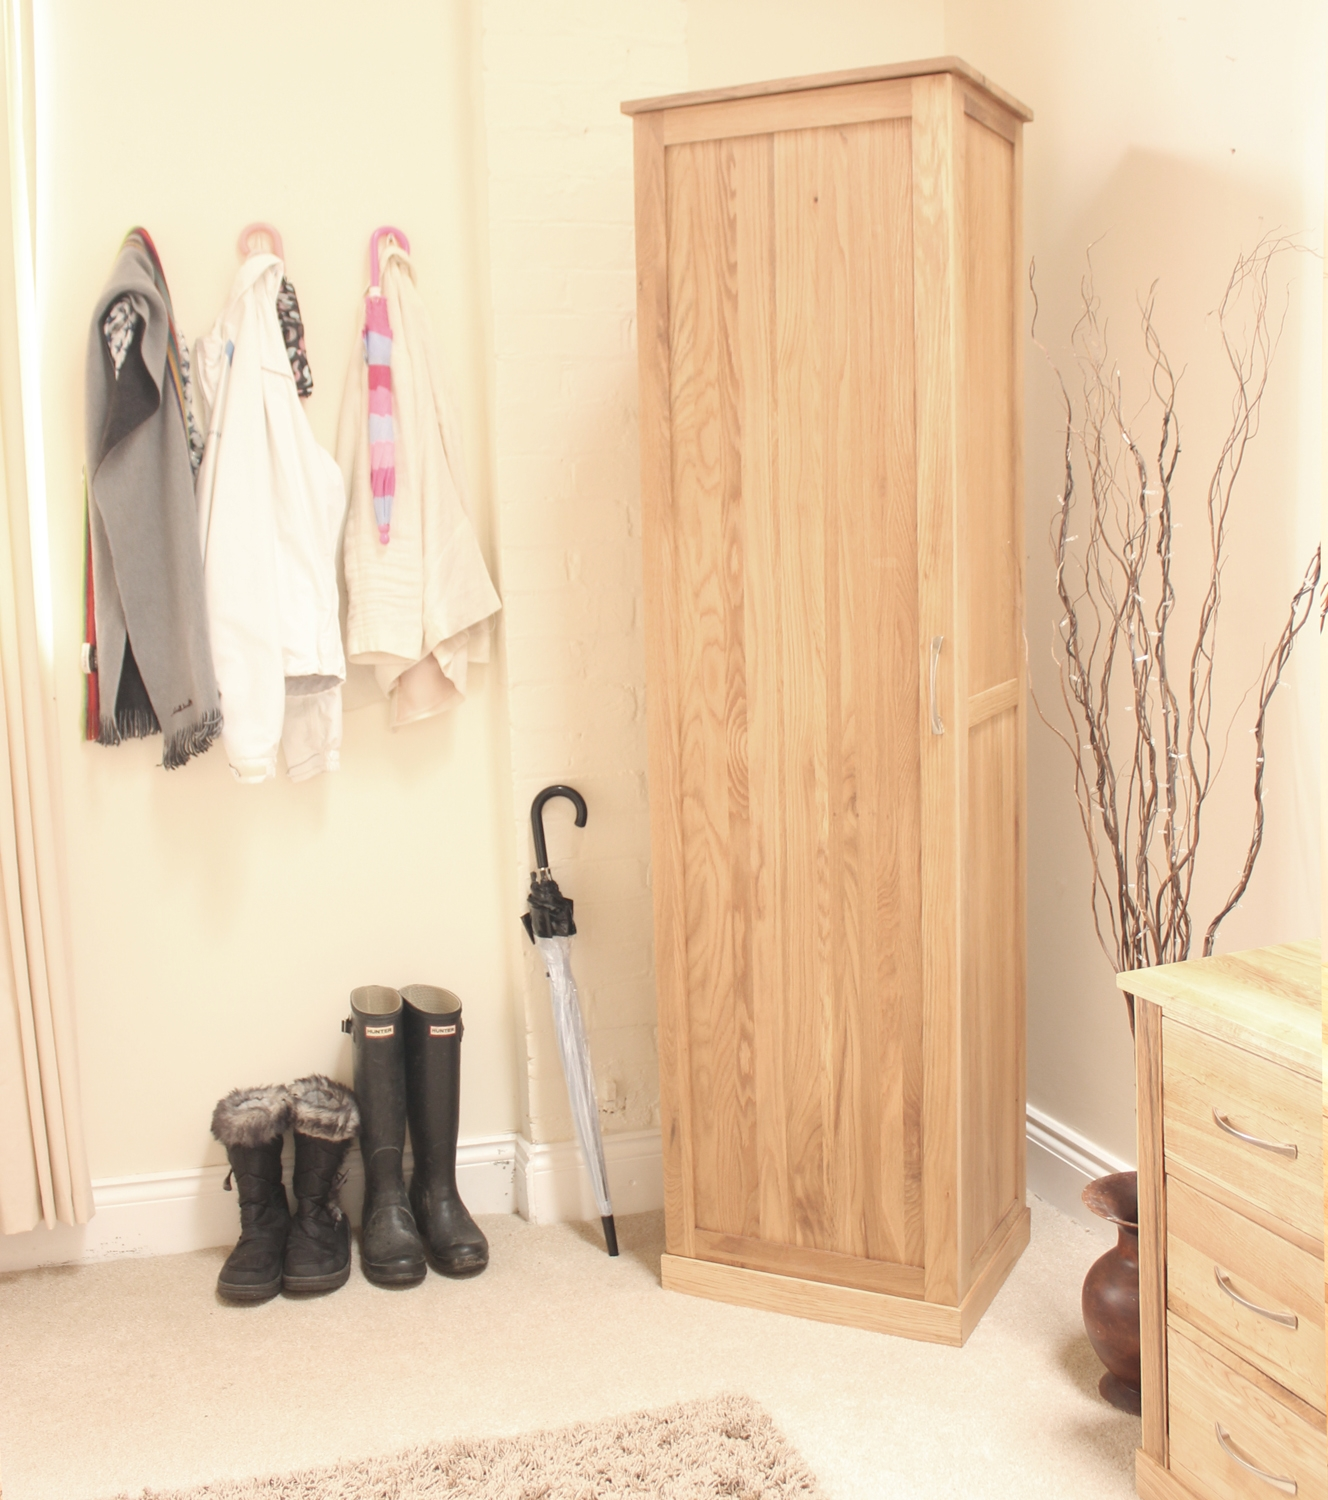 Mobel Solid Oak Furniture Shoe Storage Hallway Bench: Conran Solid Oak Furniture Shoe Cupboard Cabinet Tall